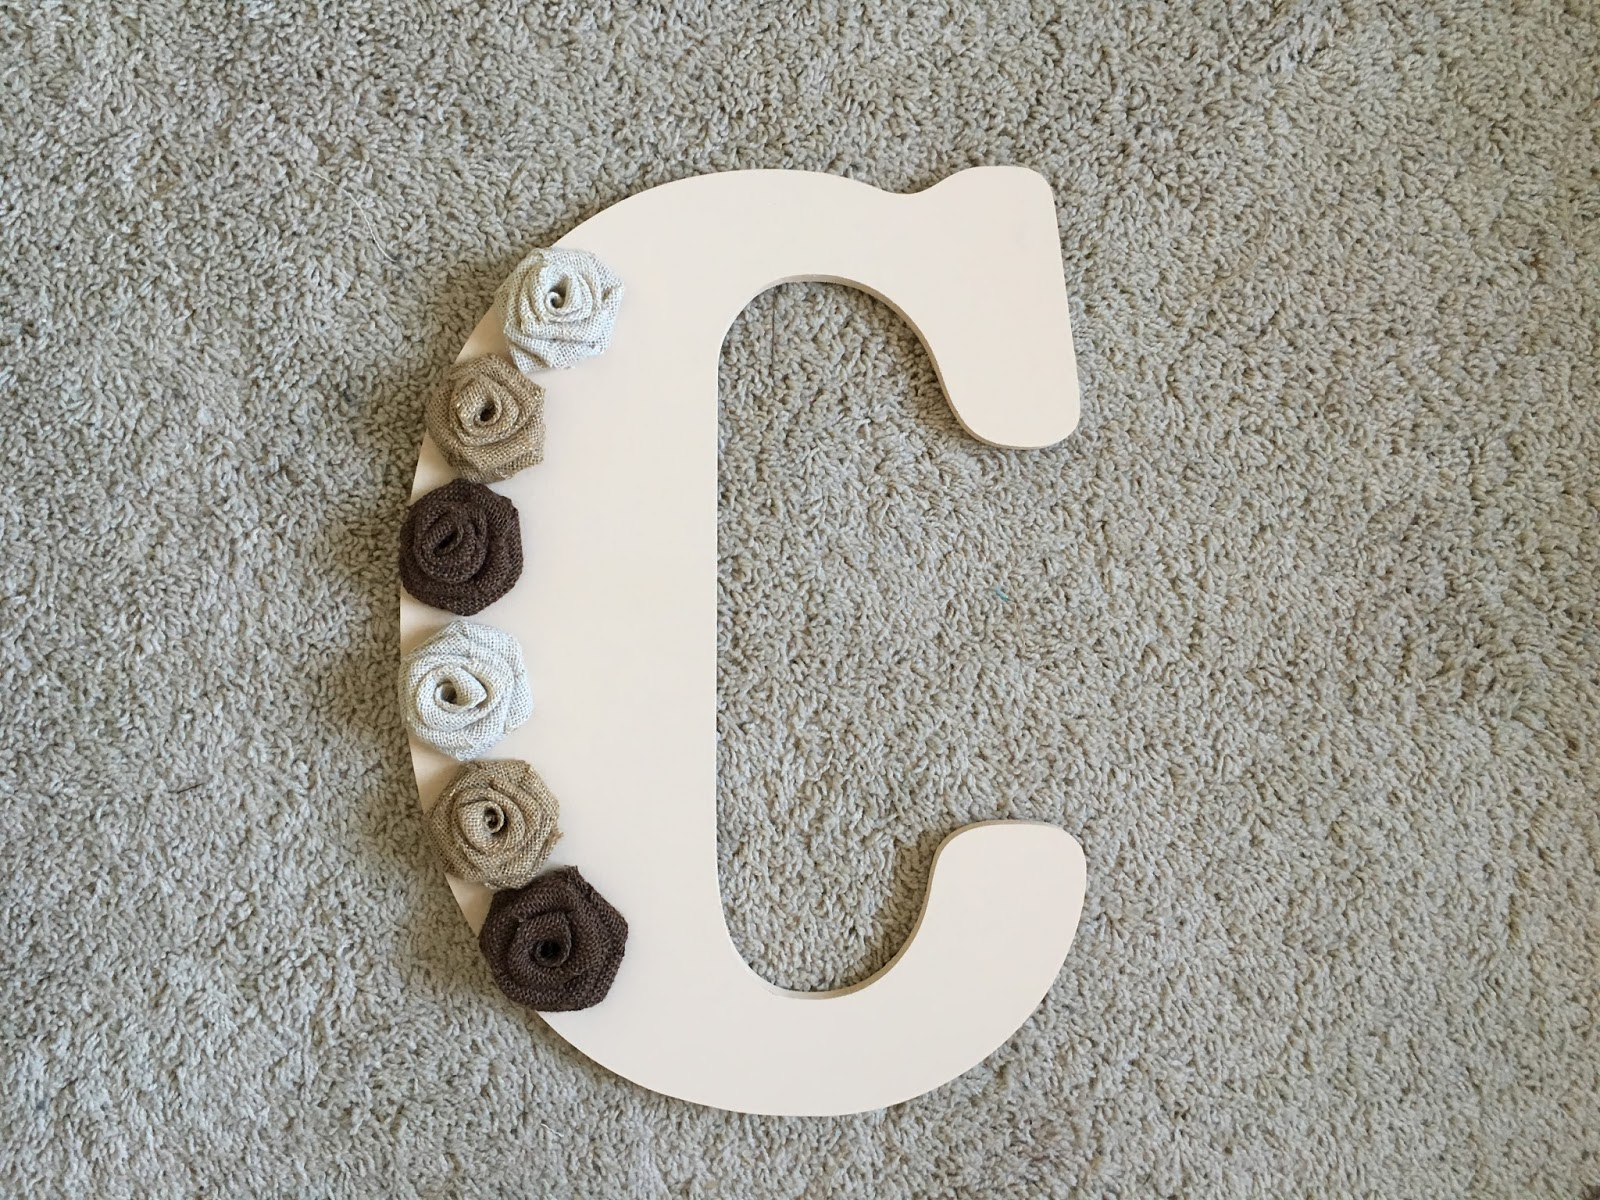 Diy Initial Door Hanger With Burlap Roses Perfectly Ambitious